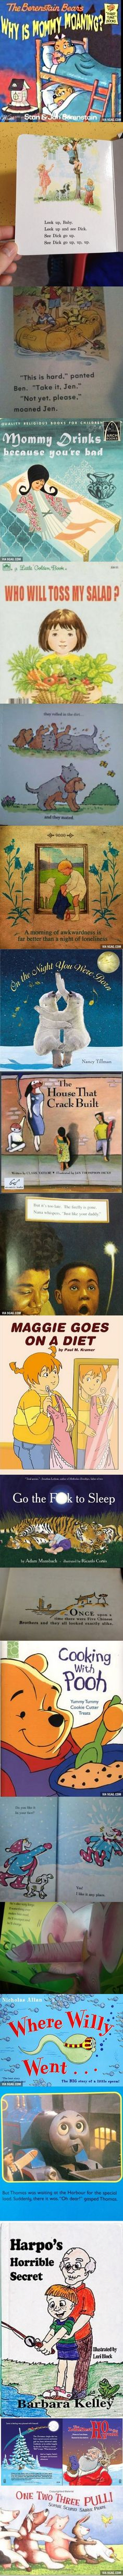 21 Horribly Inappropriate Books To Traumatize Your Children